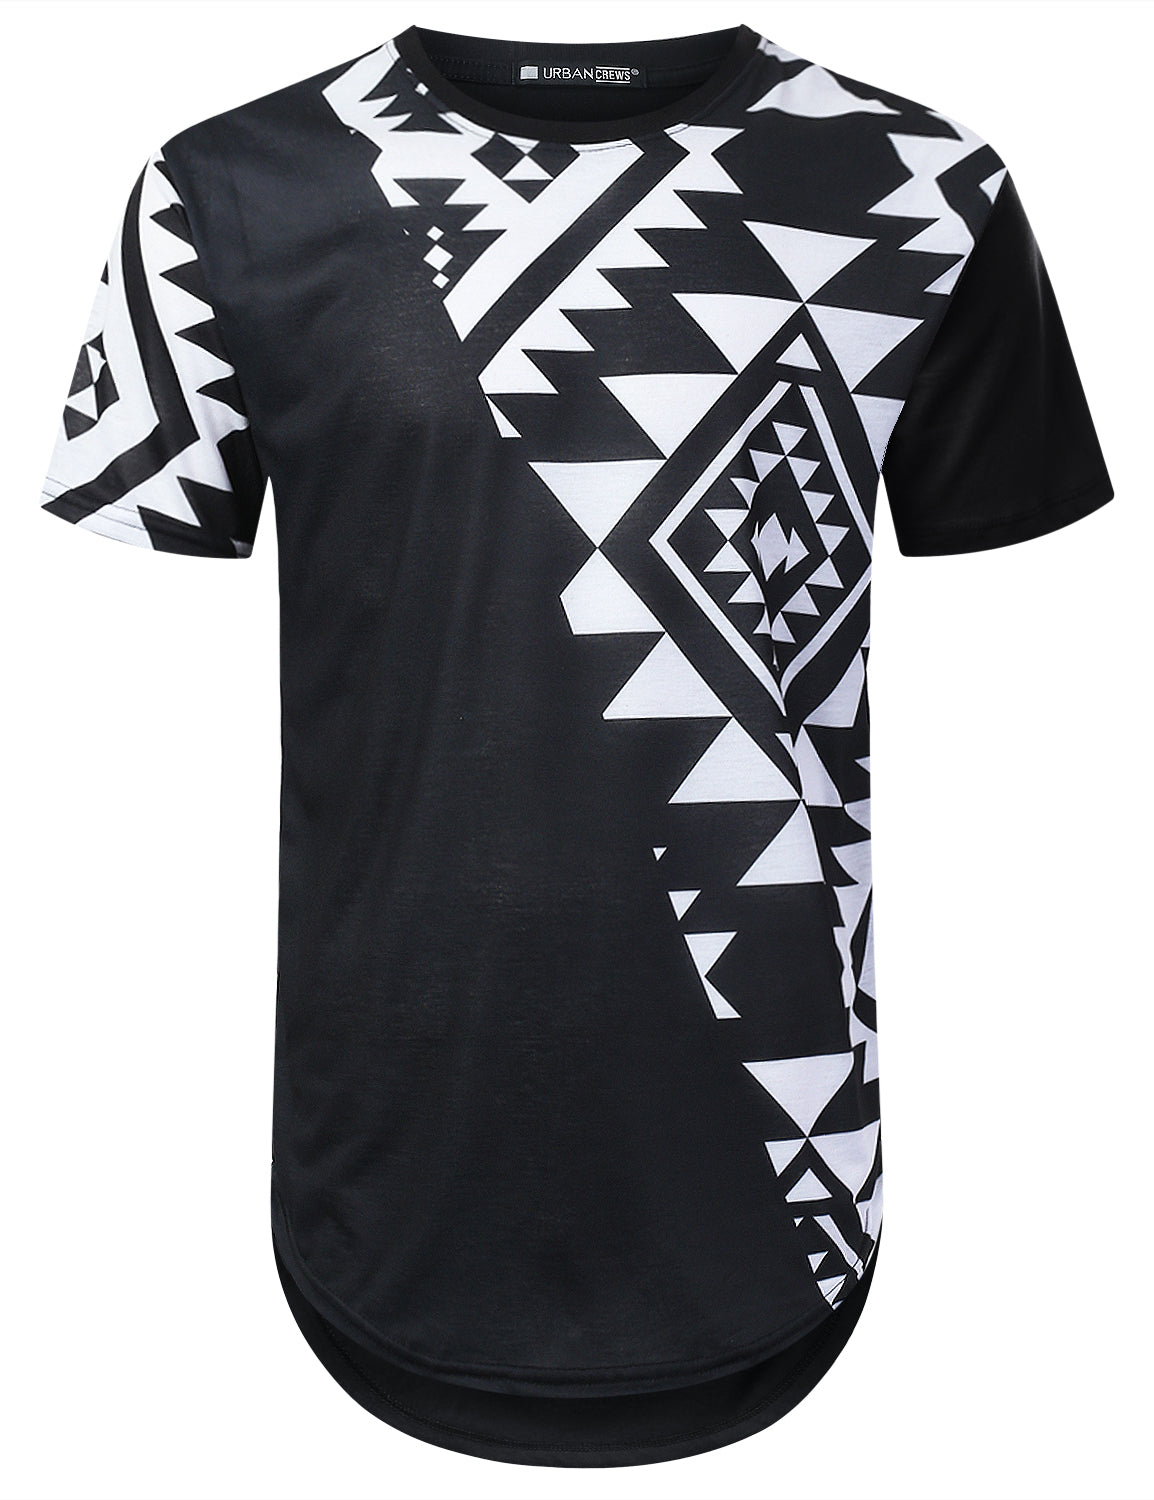 BLACK Aztec Diagonal Panel Longline T-shirt - URBANCREWS